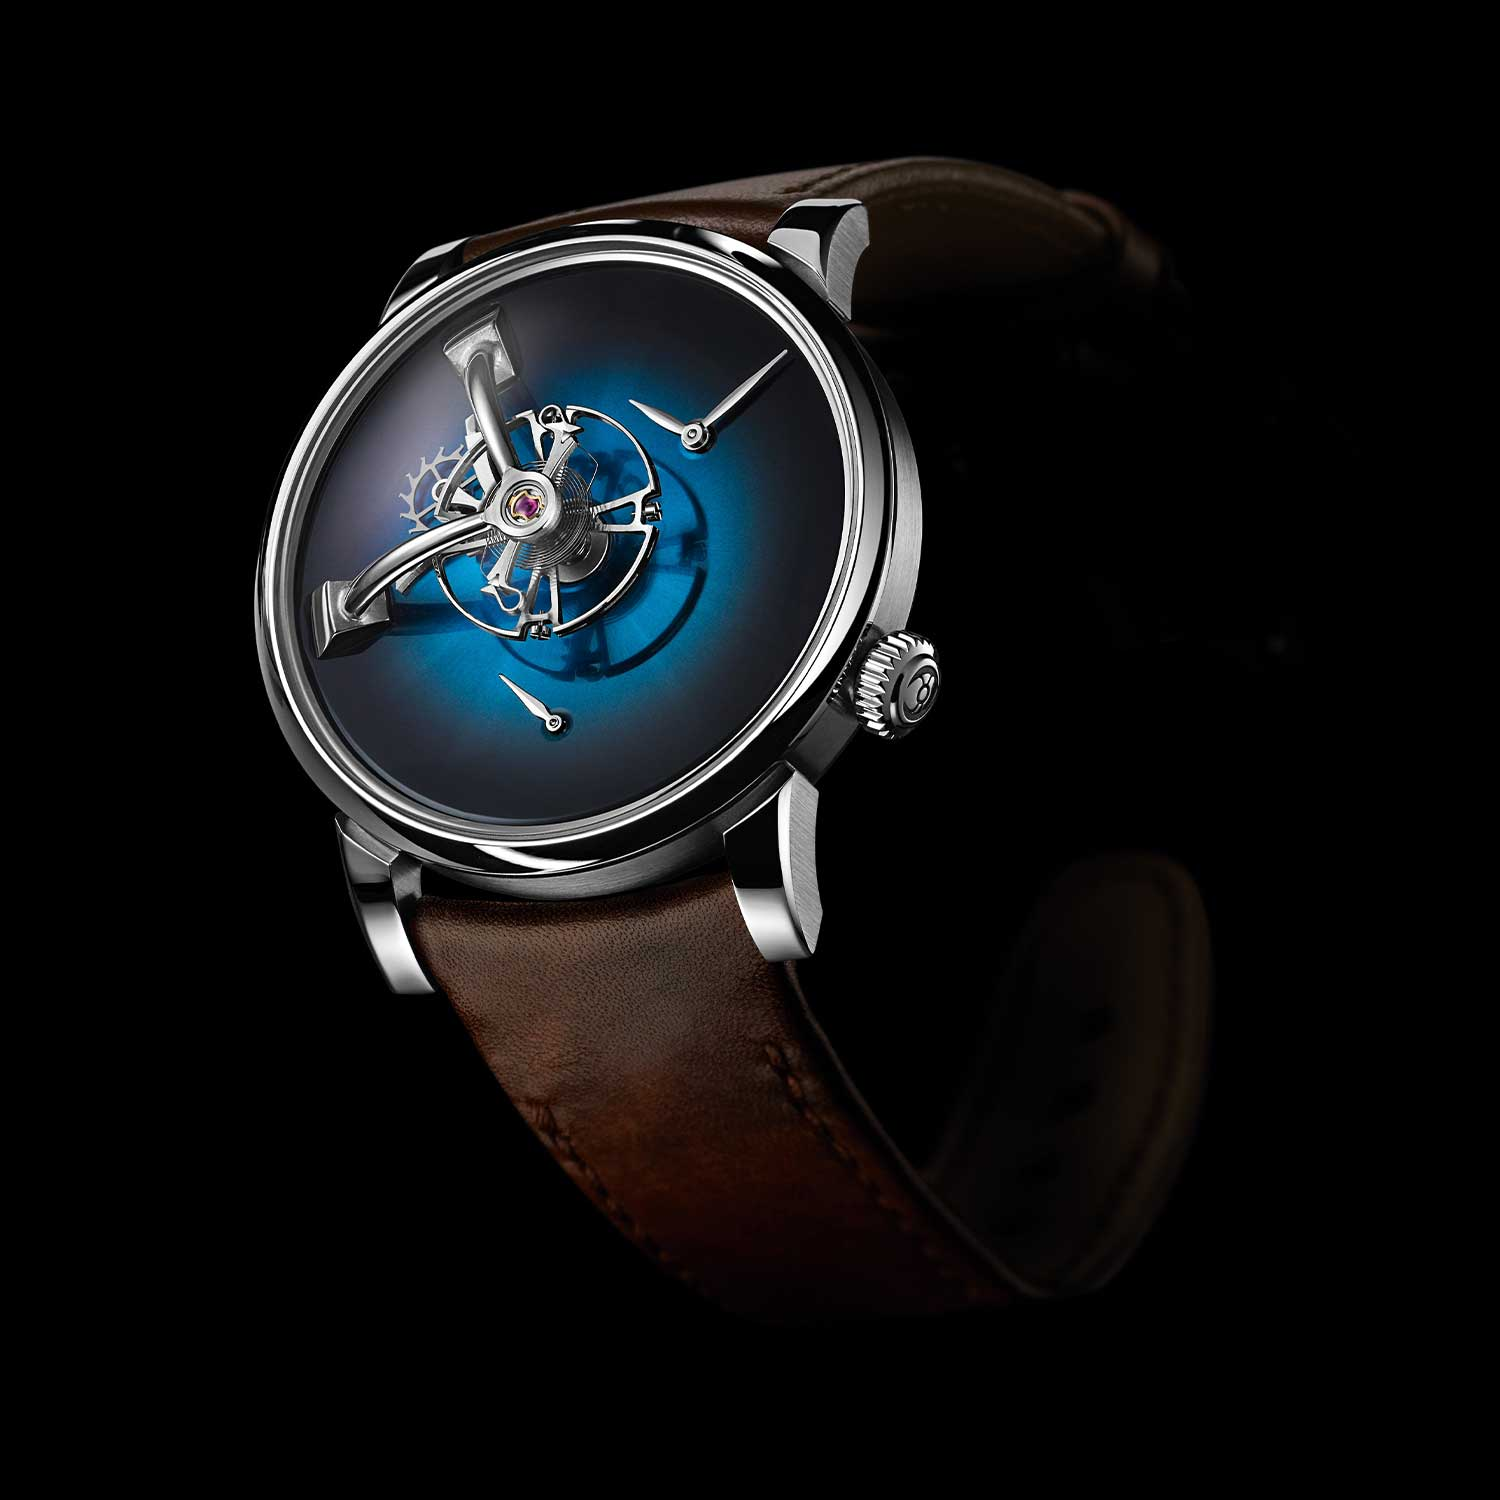 MB&F × H. Moser LM101 in Funky Blue